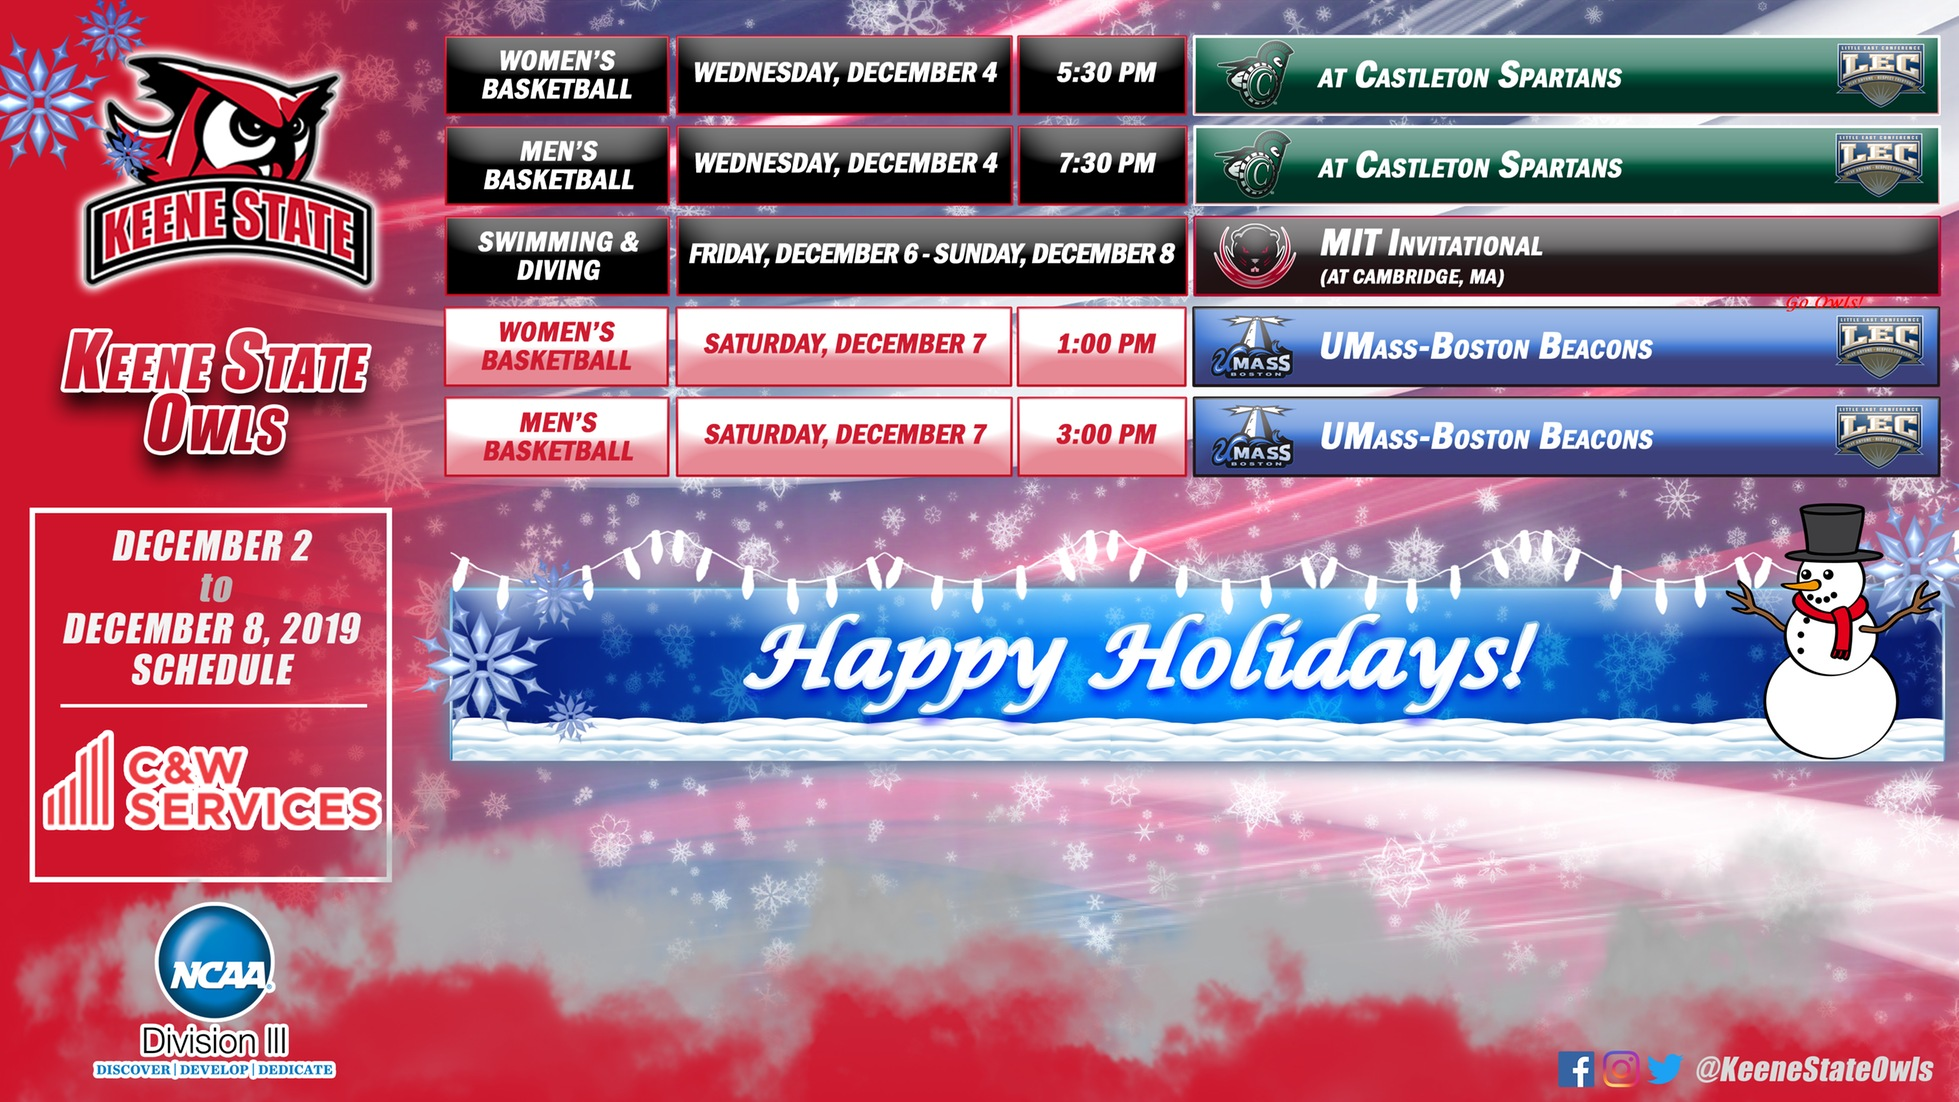 Keene State Athletics Upcoming Schedule presented by C&W Services: December 2-8